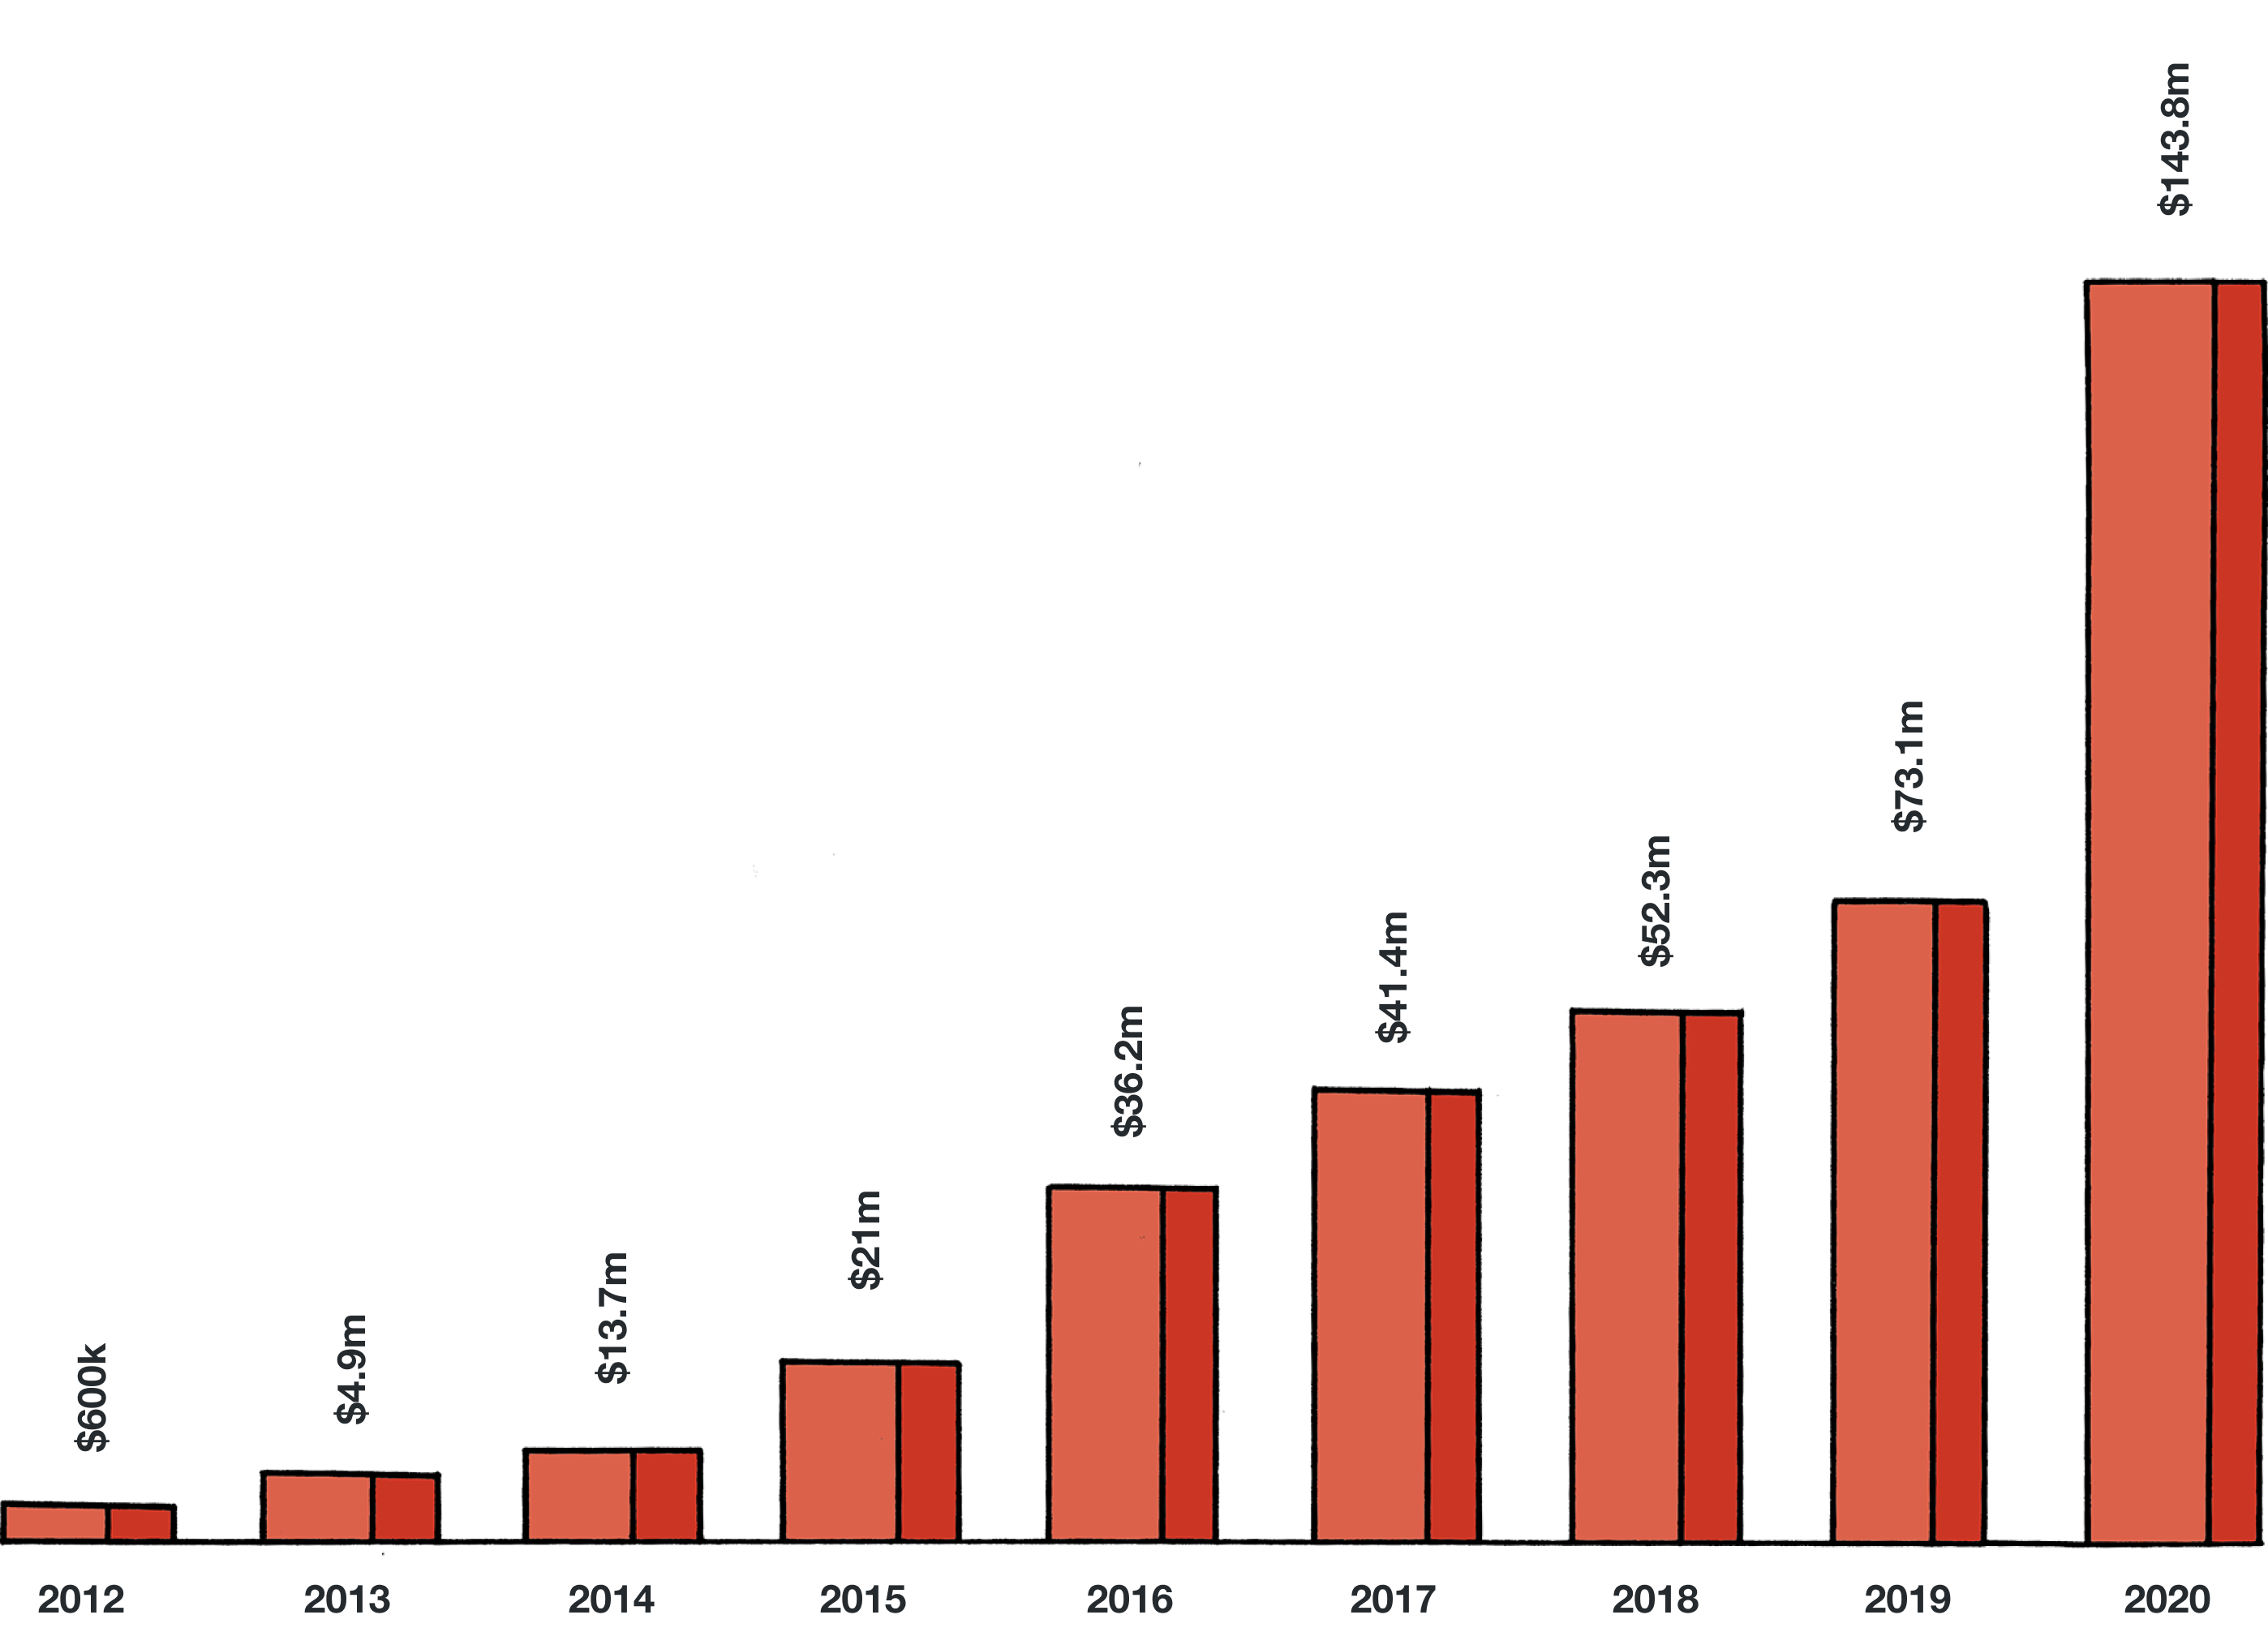 A graph showing the growth of the creator economy between 2012 through 2020.